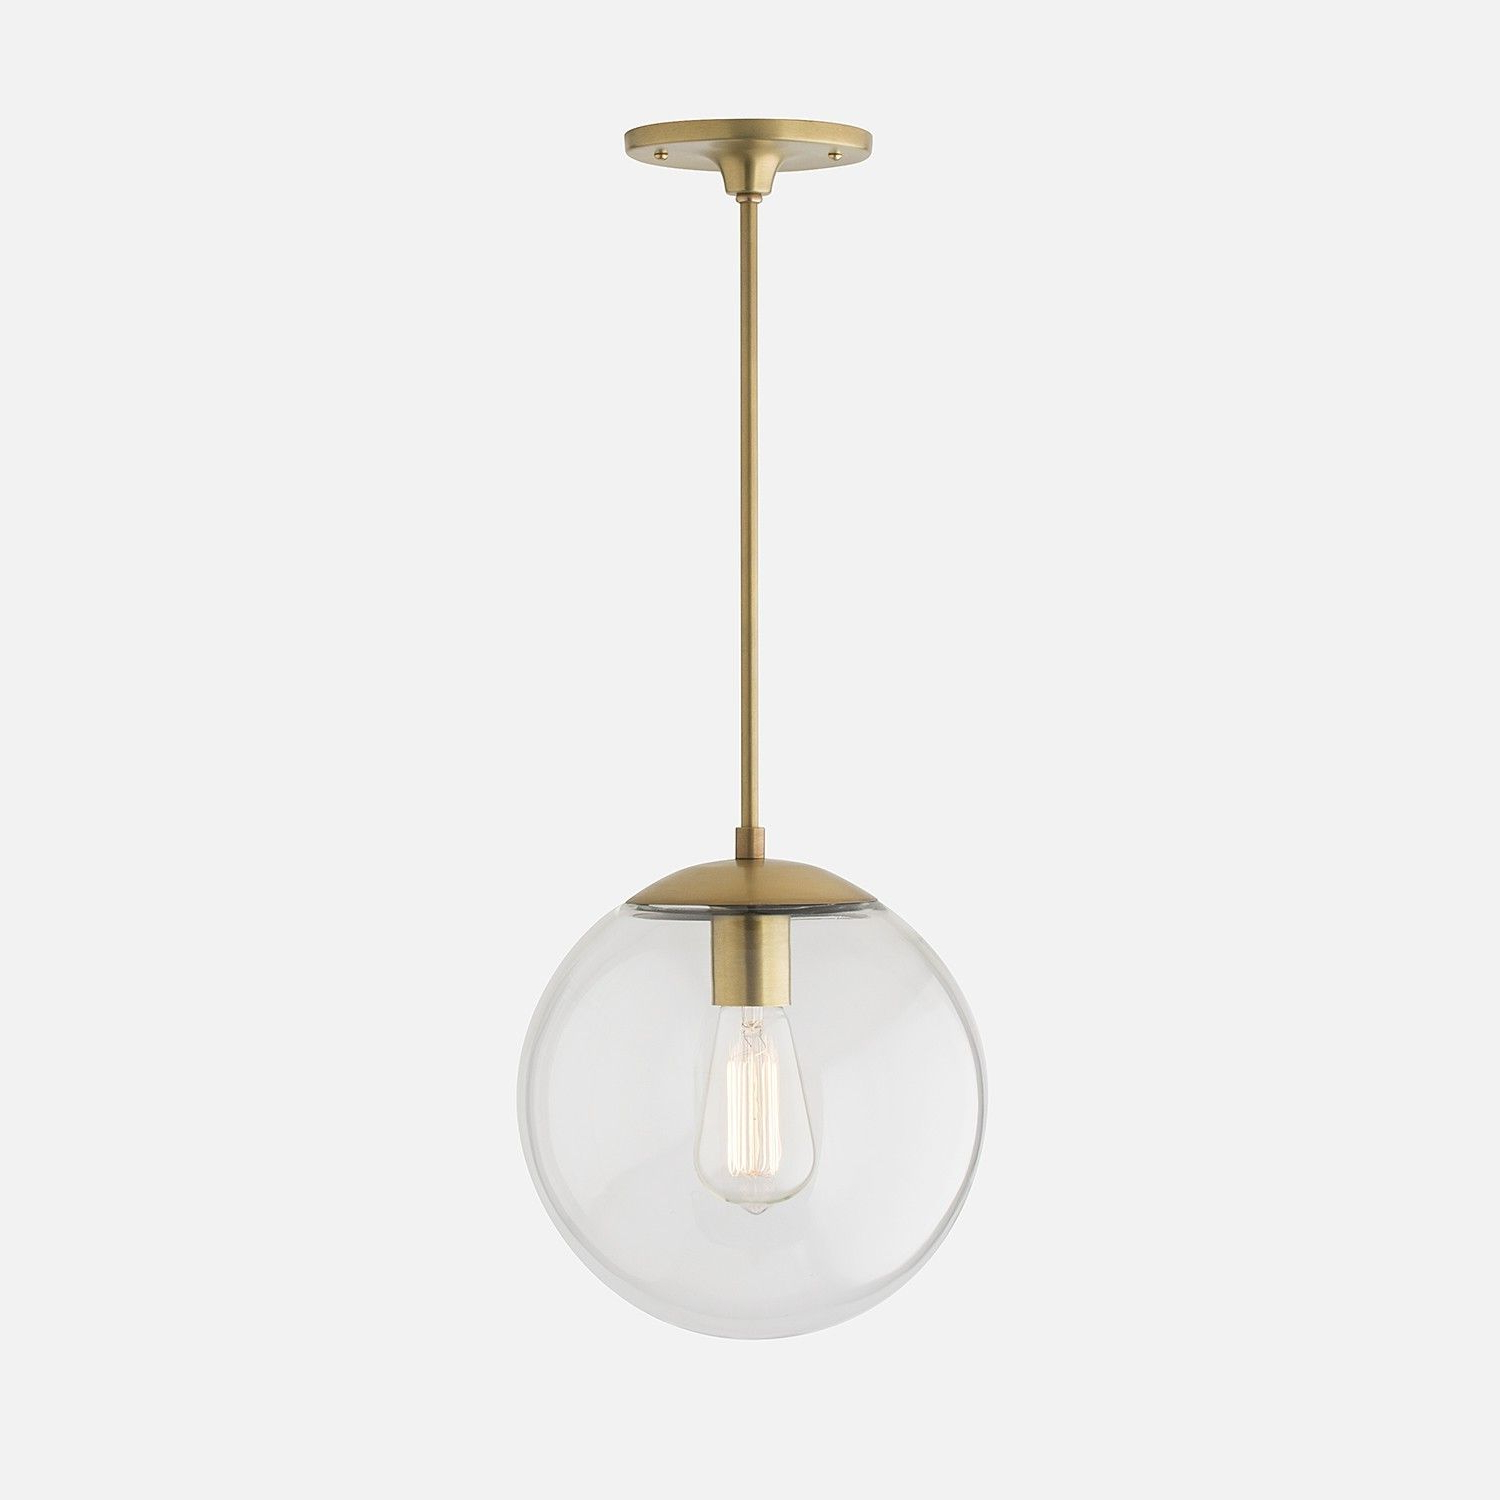 Pin On Schoolhouse Lighting Within Widely Used Gehry 1 Light Single Globe Pendants (View 17 of 25)